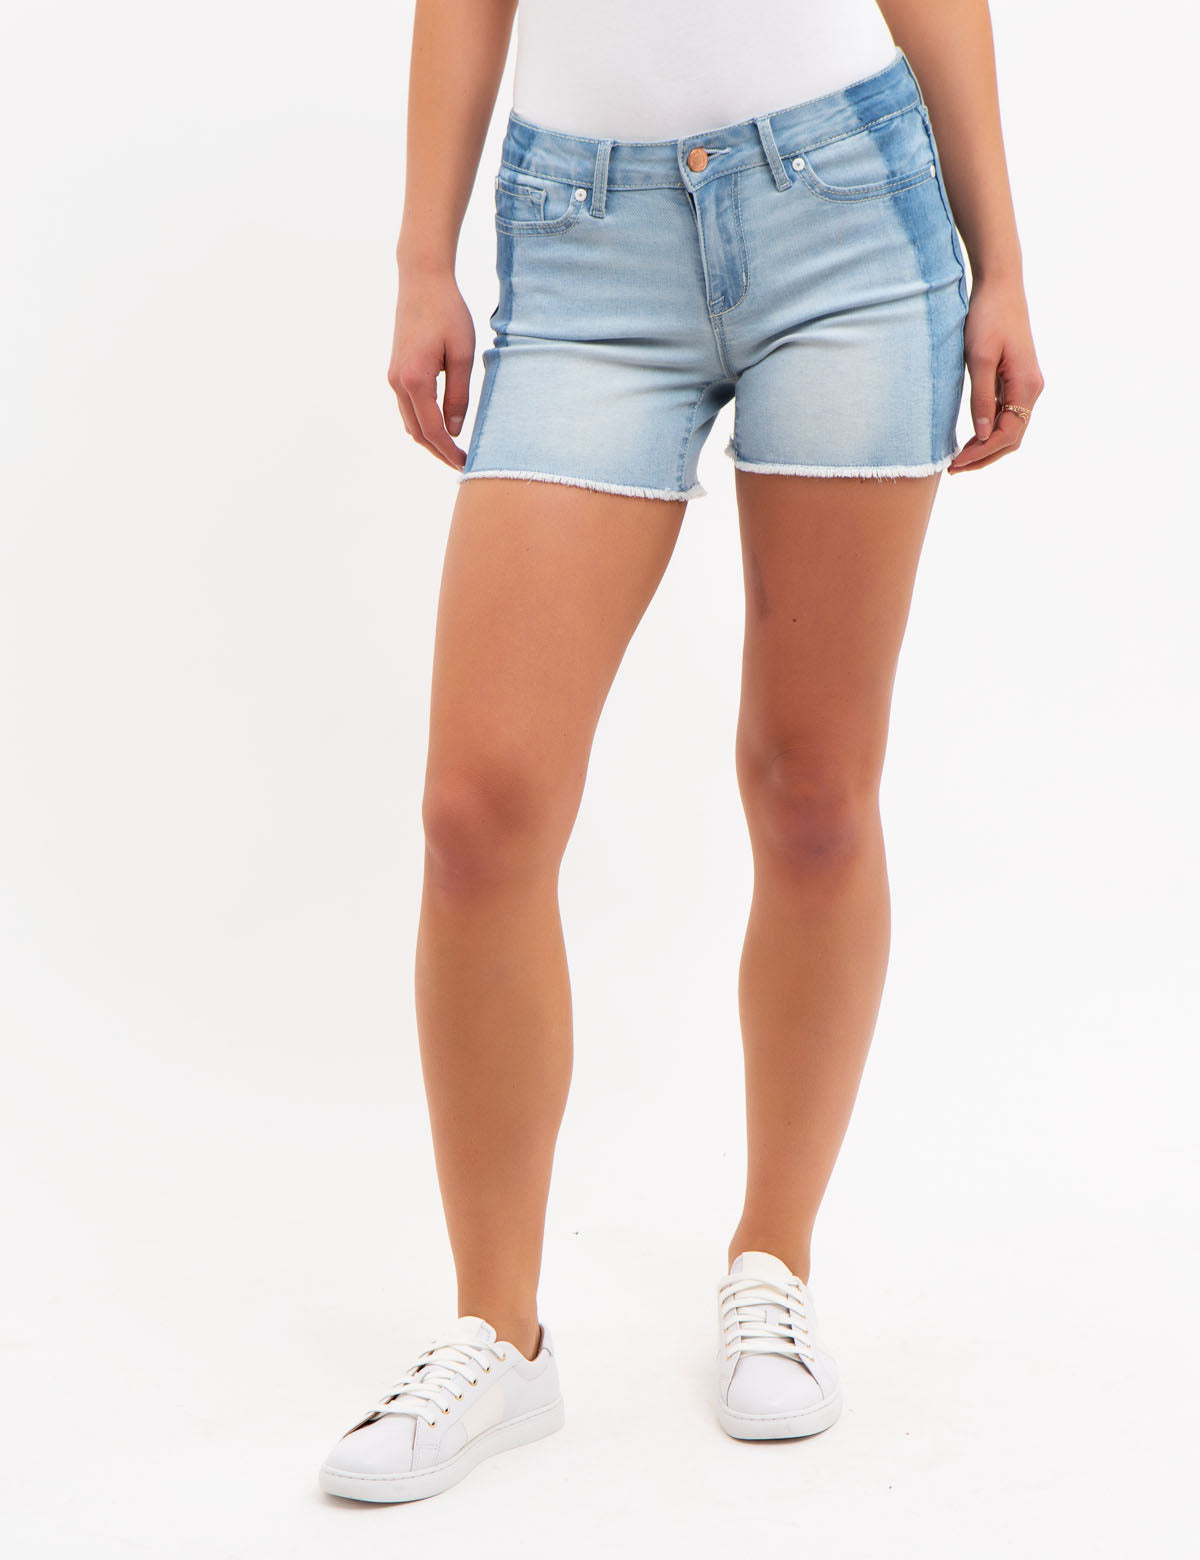 COLORBLOCK JEAN SHORTS